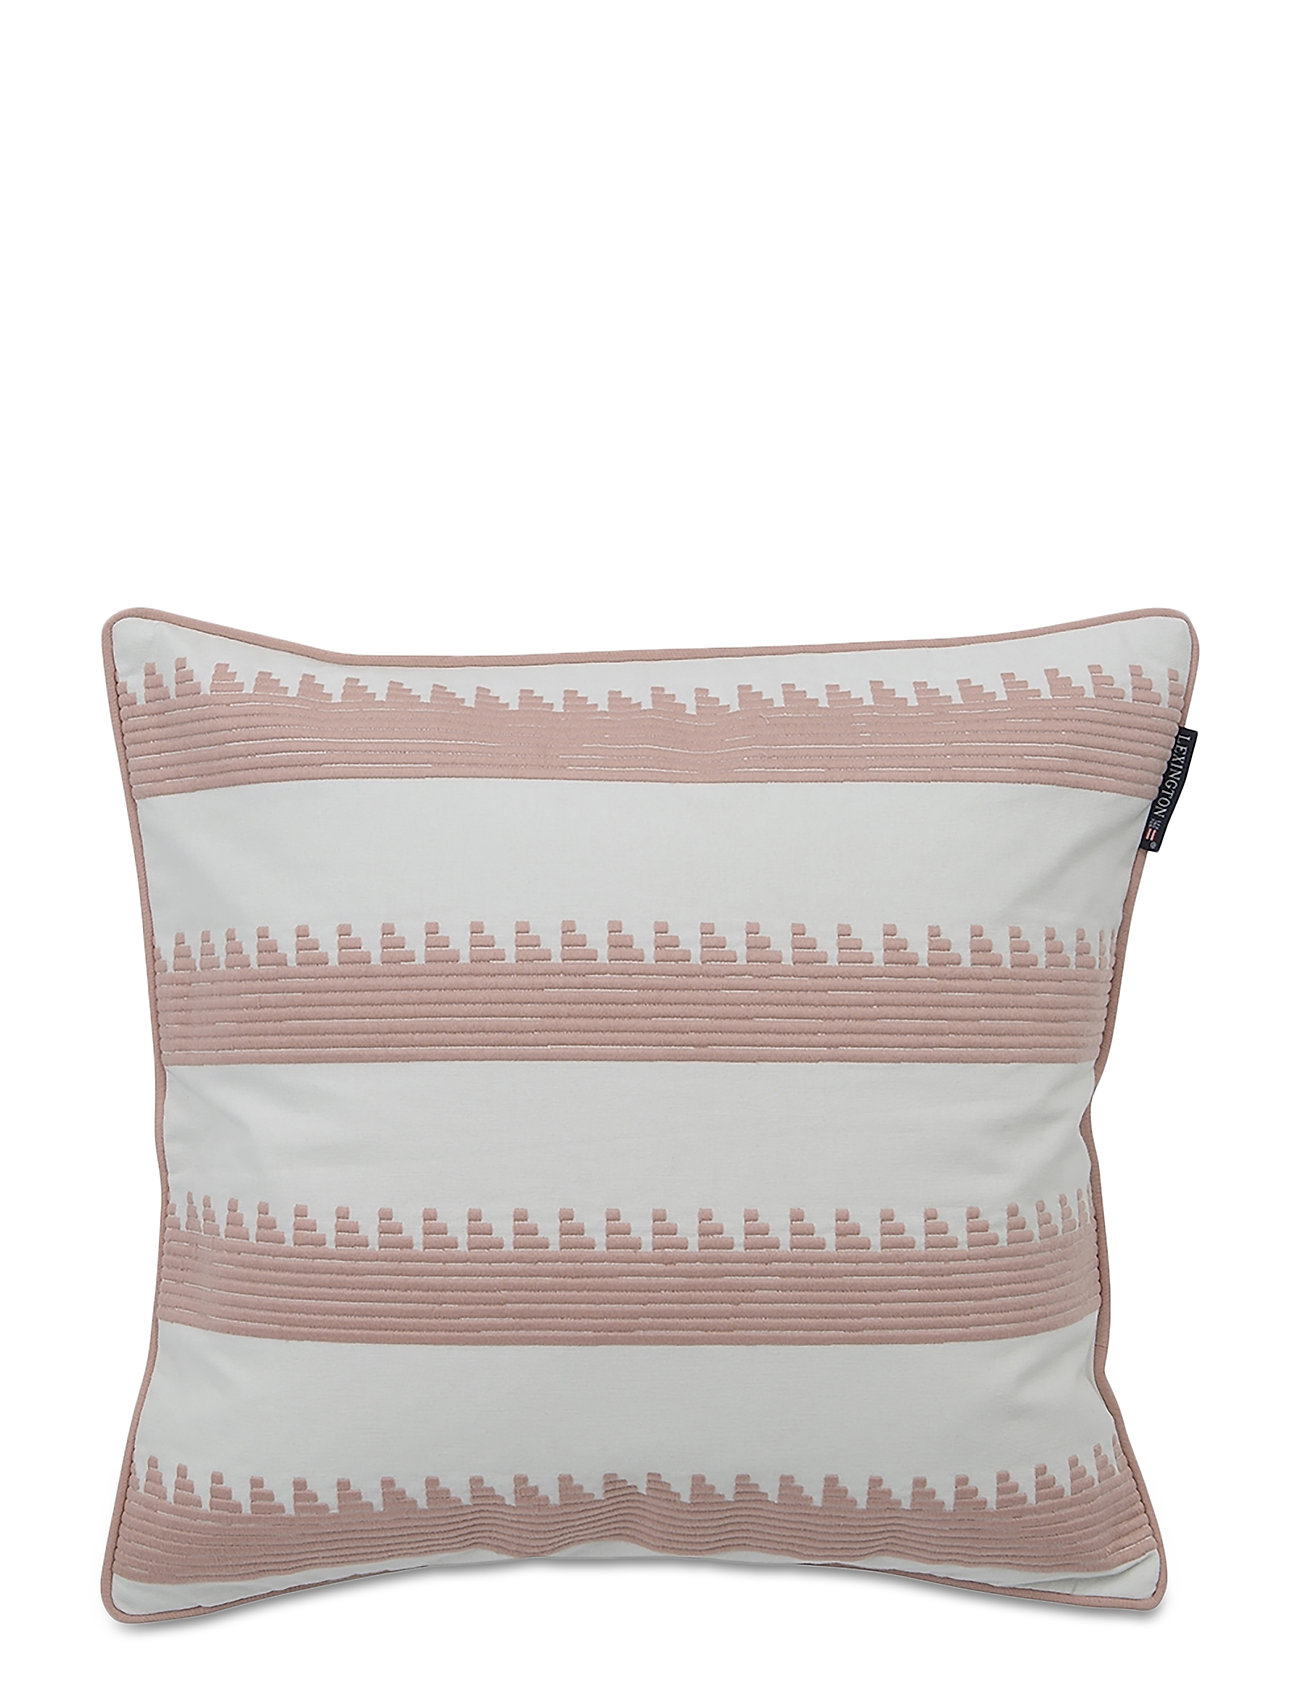 Home Home Embroidery Embroidery Striped Striped Shampink Shampink Embroidery whiteLexington whiteLexington Striped wm80NvnO